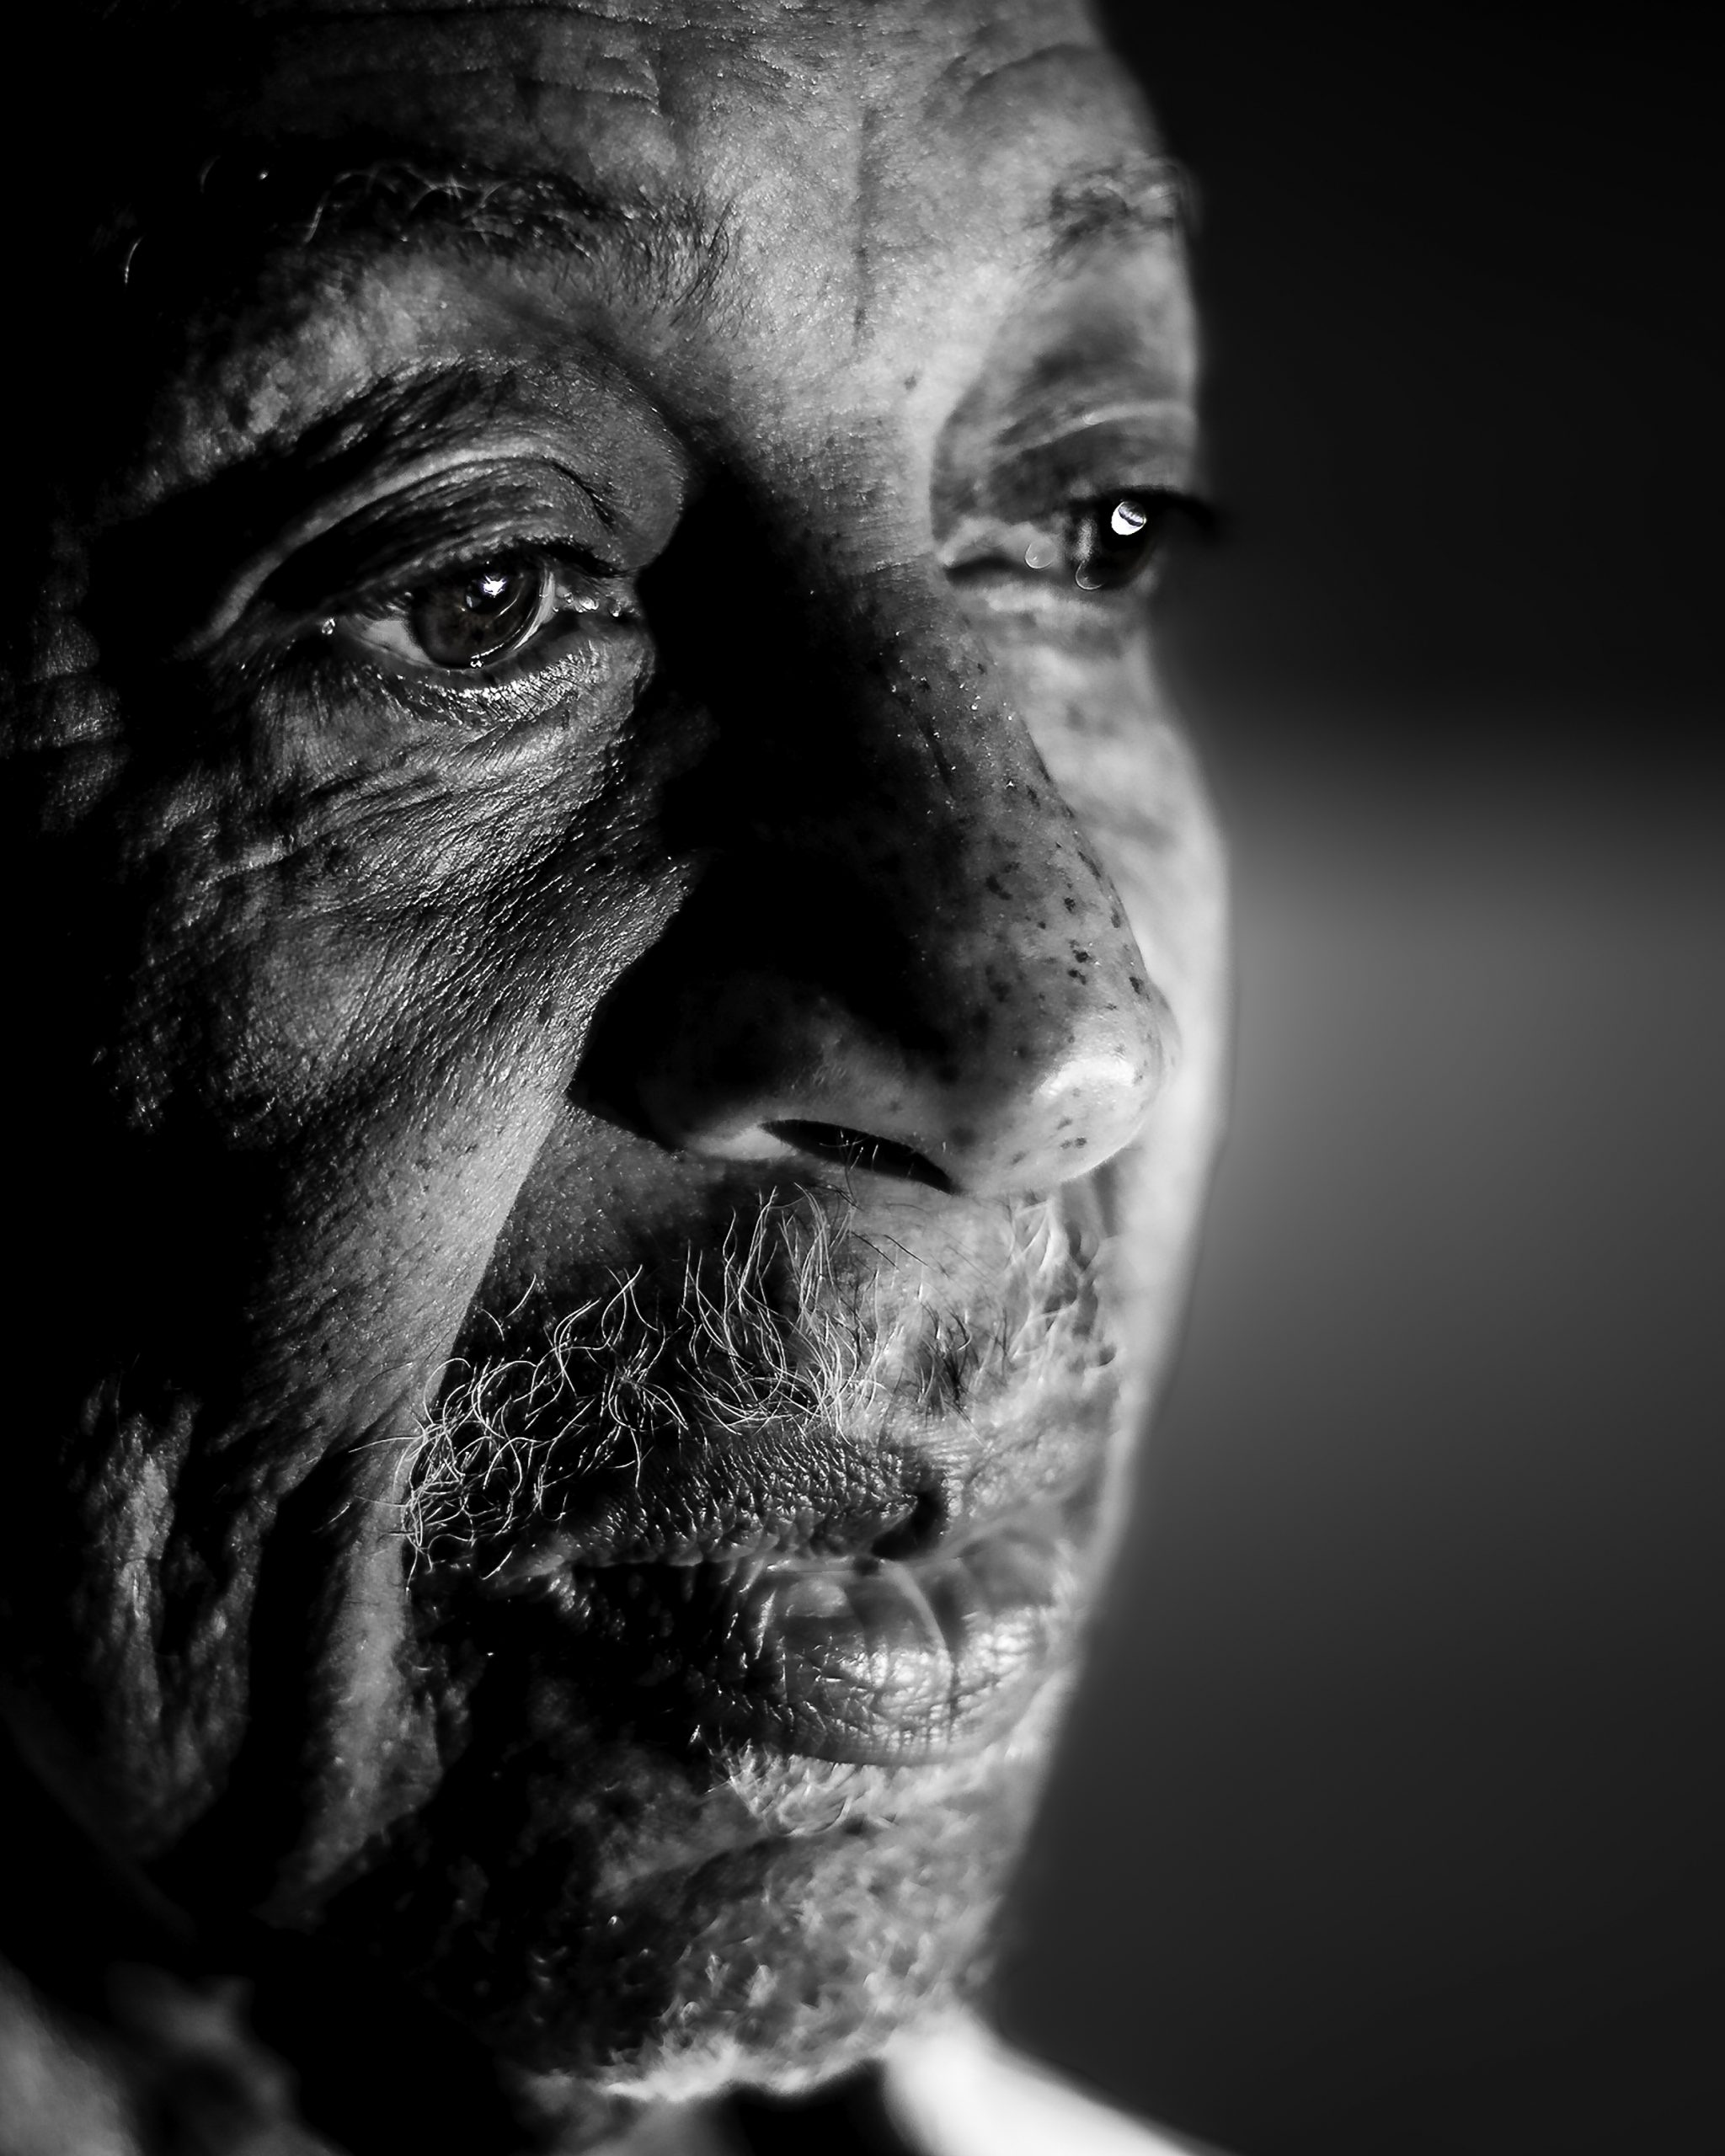 A face of Wisdom, Life & Love. Powerful Photography